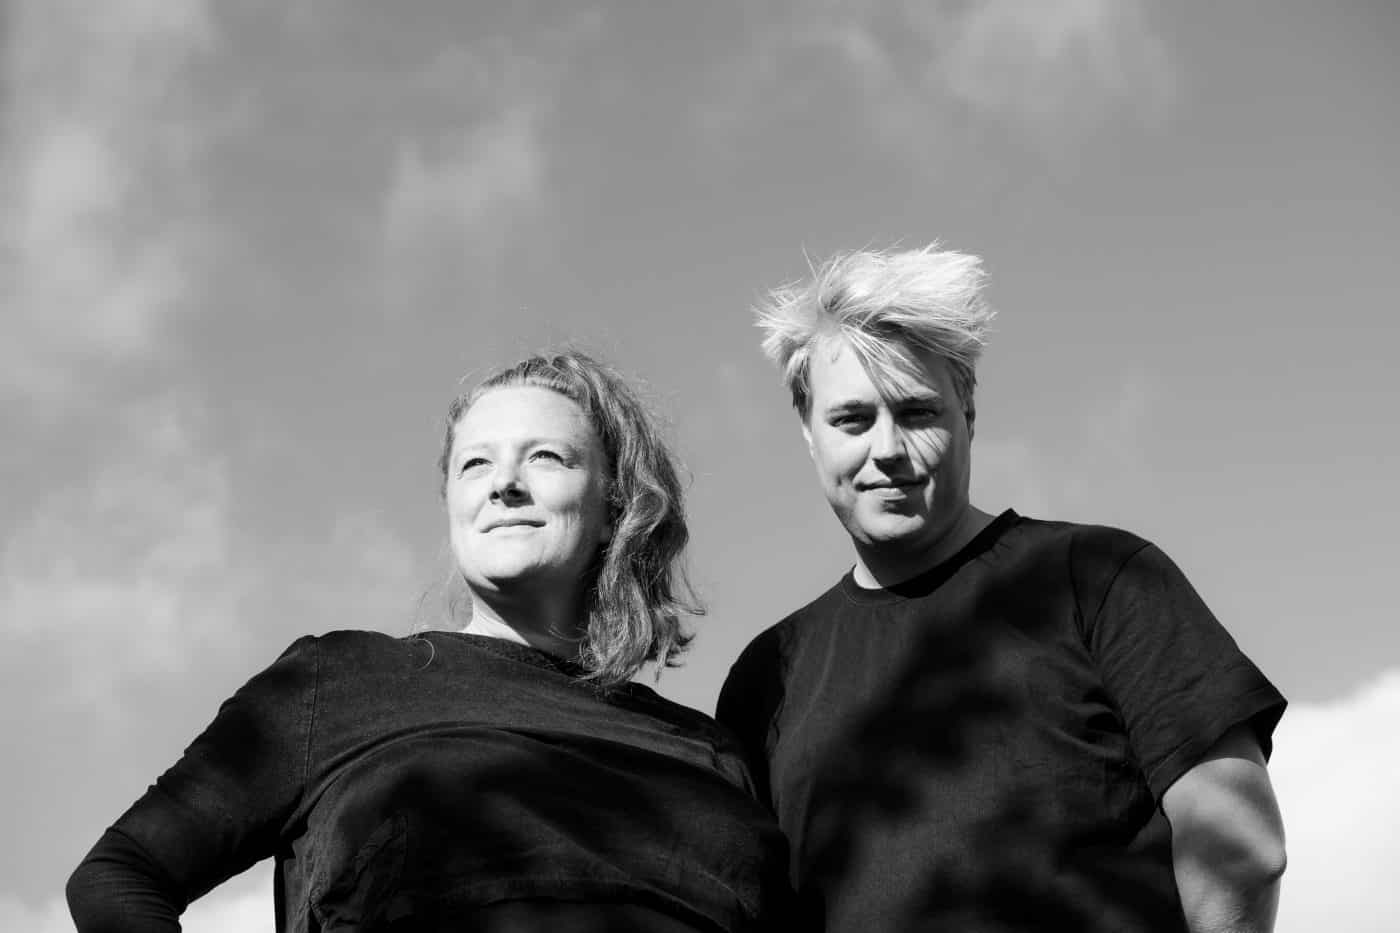 Esther Jongsma and Sam van Gurp of VANTOT